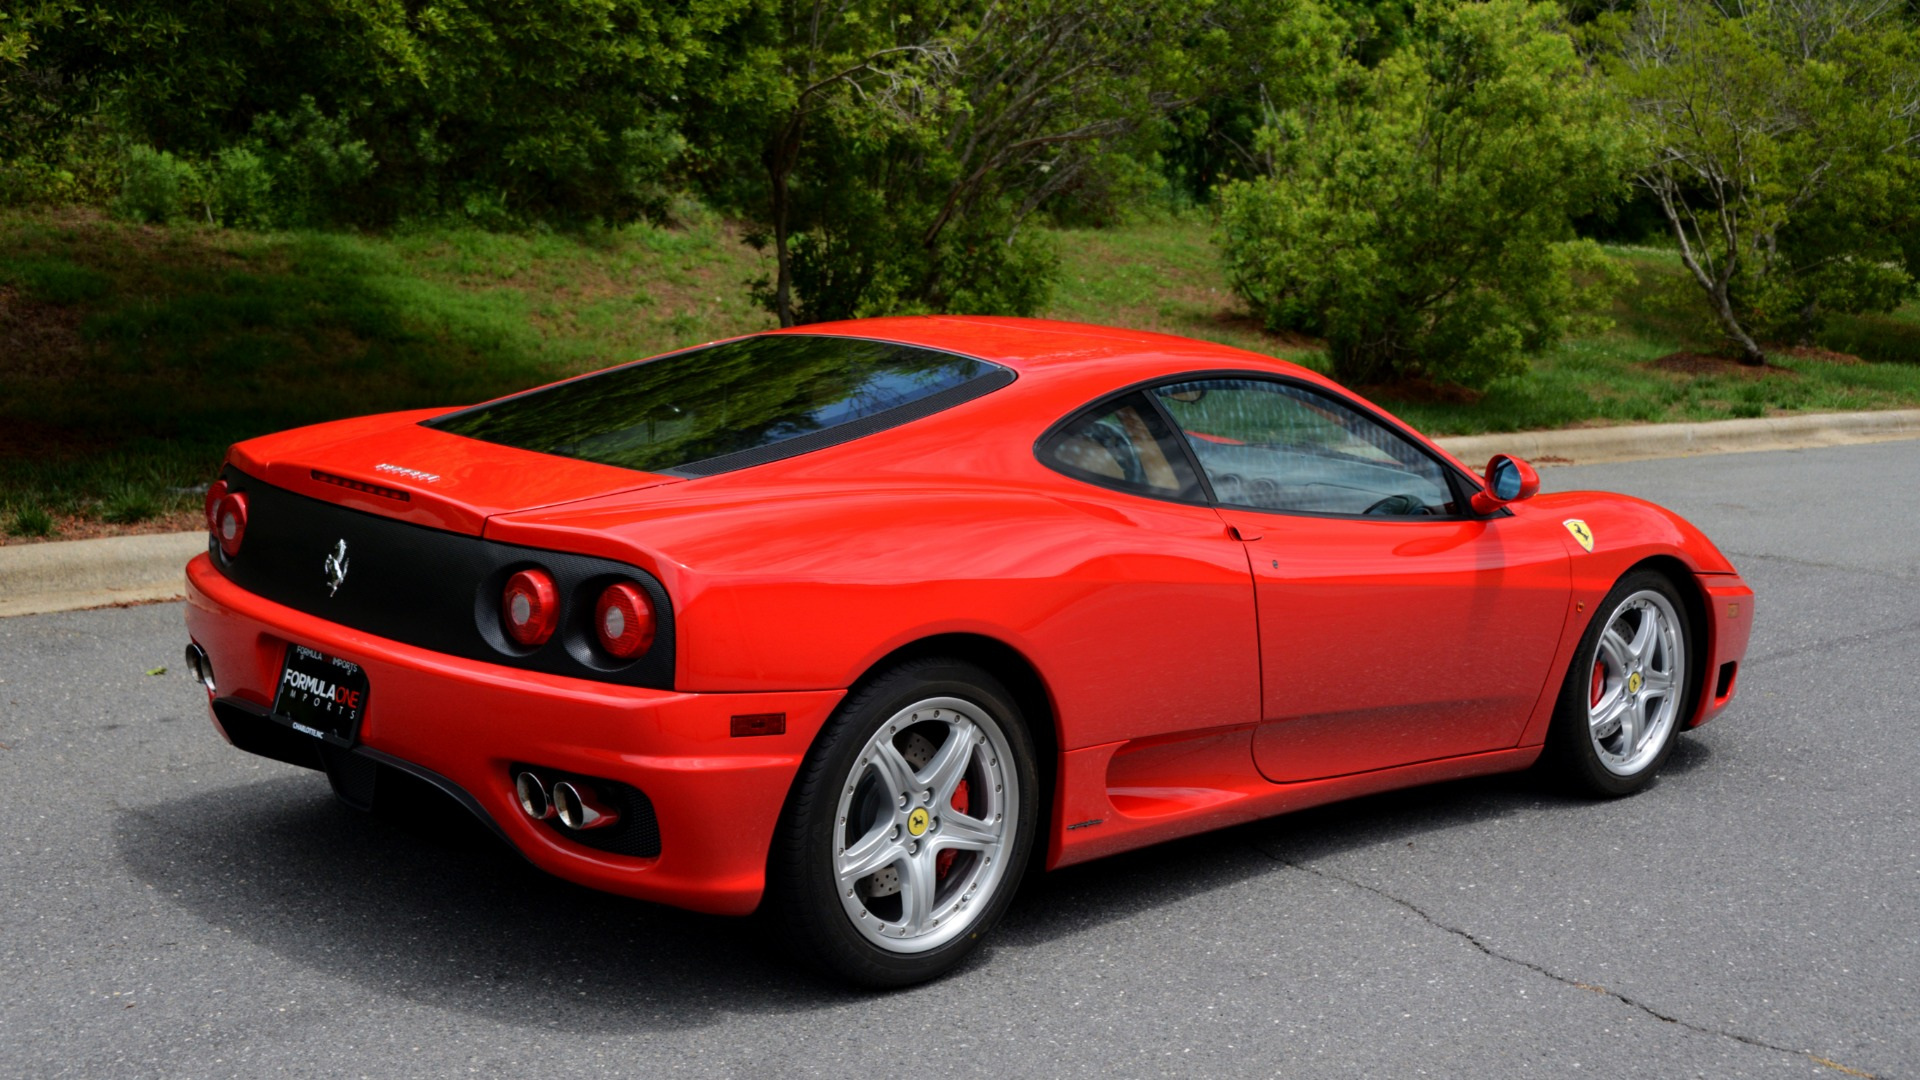 Used 2004 Ferrari 360 MODENA COUPE / GATED 6-SPD MANUAL / SUNROOF / LOW MILES for sale Sold at Formula Imports in Charlotte NC 28227 4